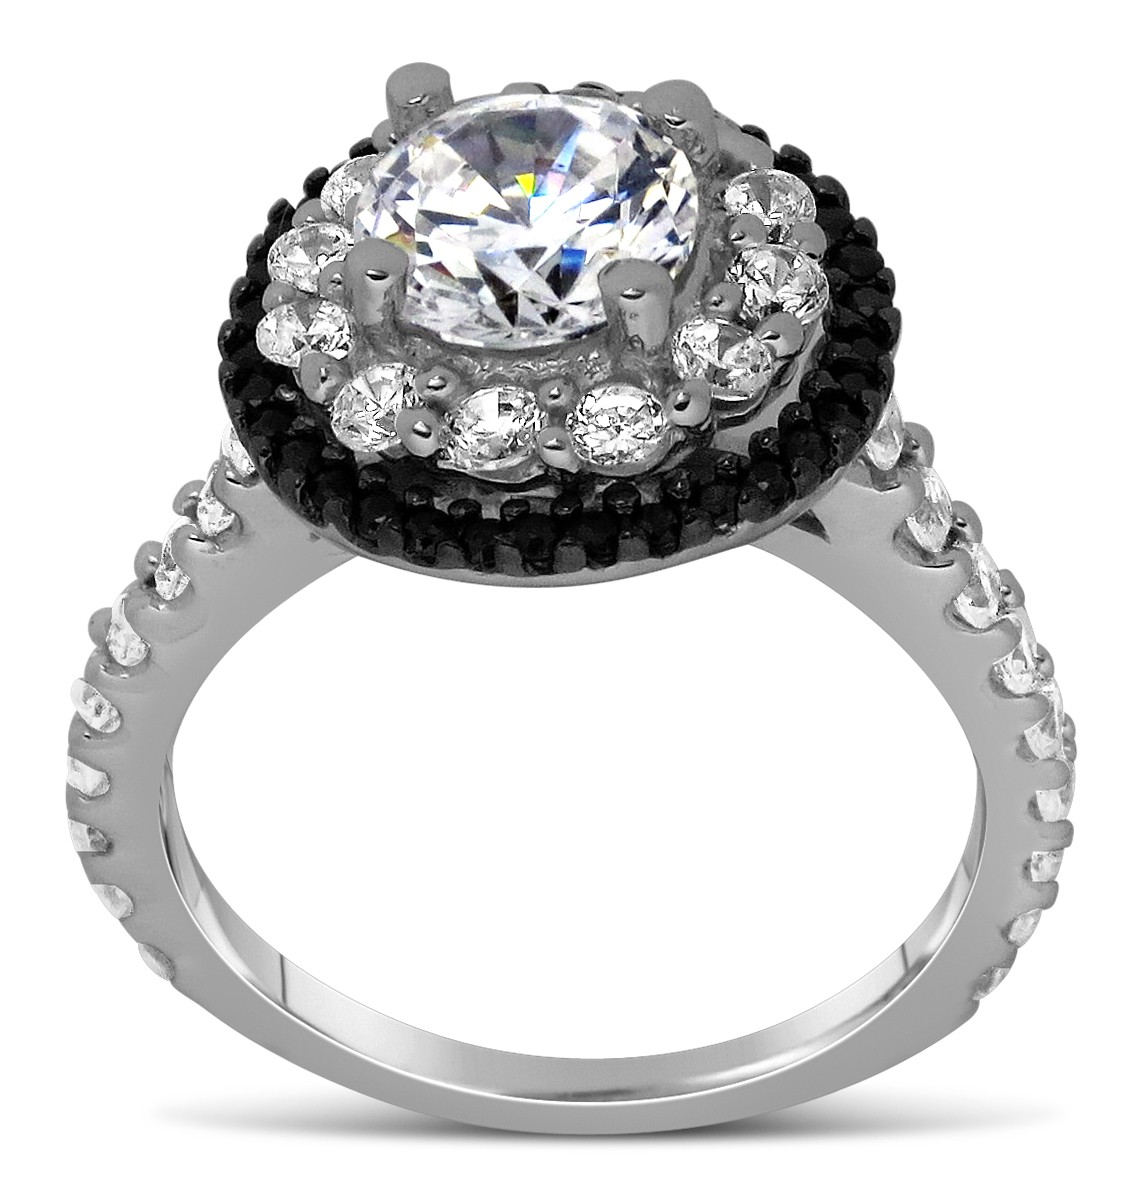 Luxurious 1 Carat Black and White Round Diamond Halo Engagement Ring in White